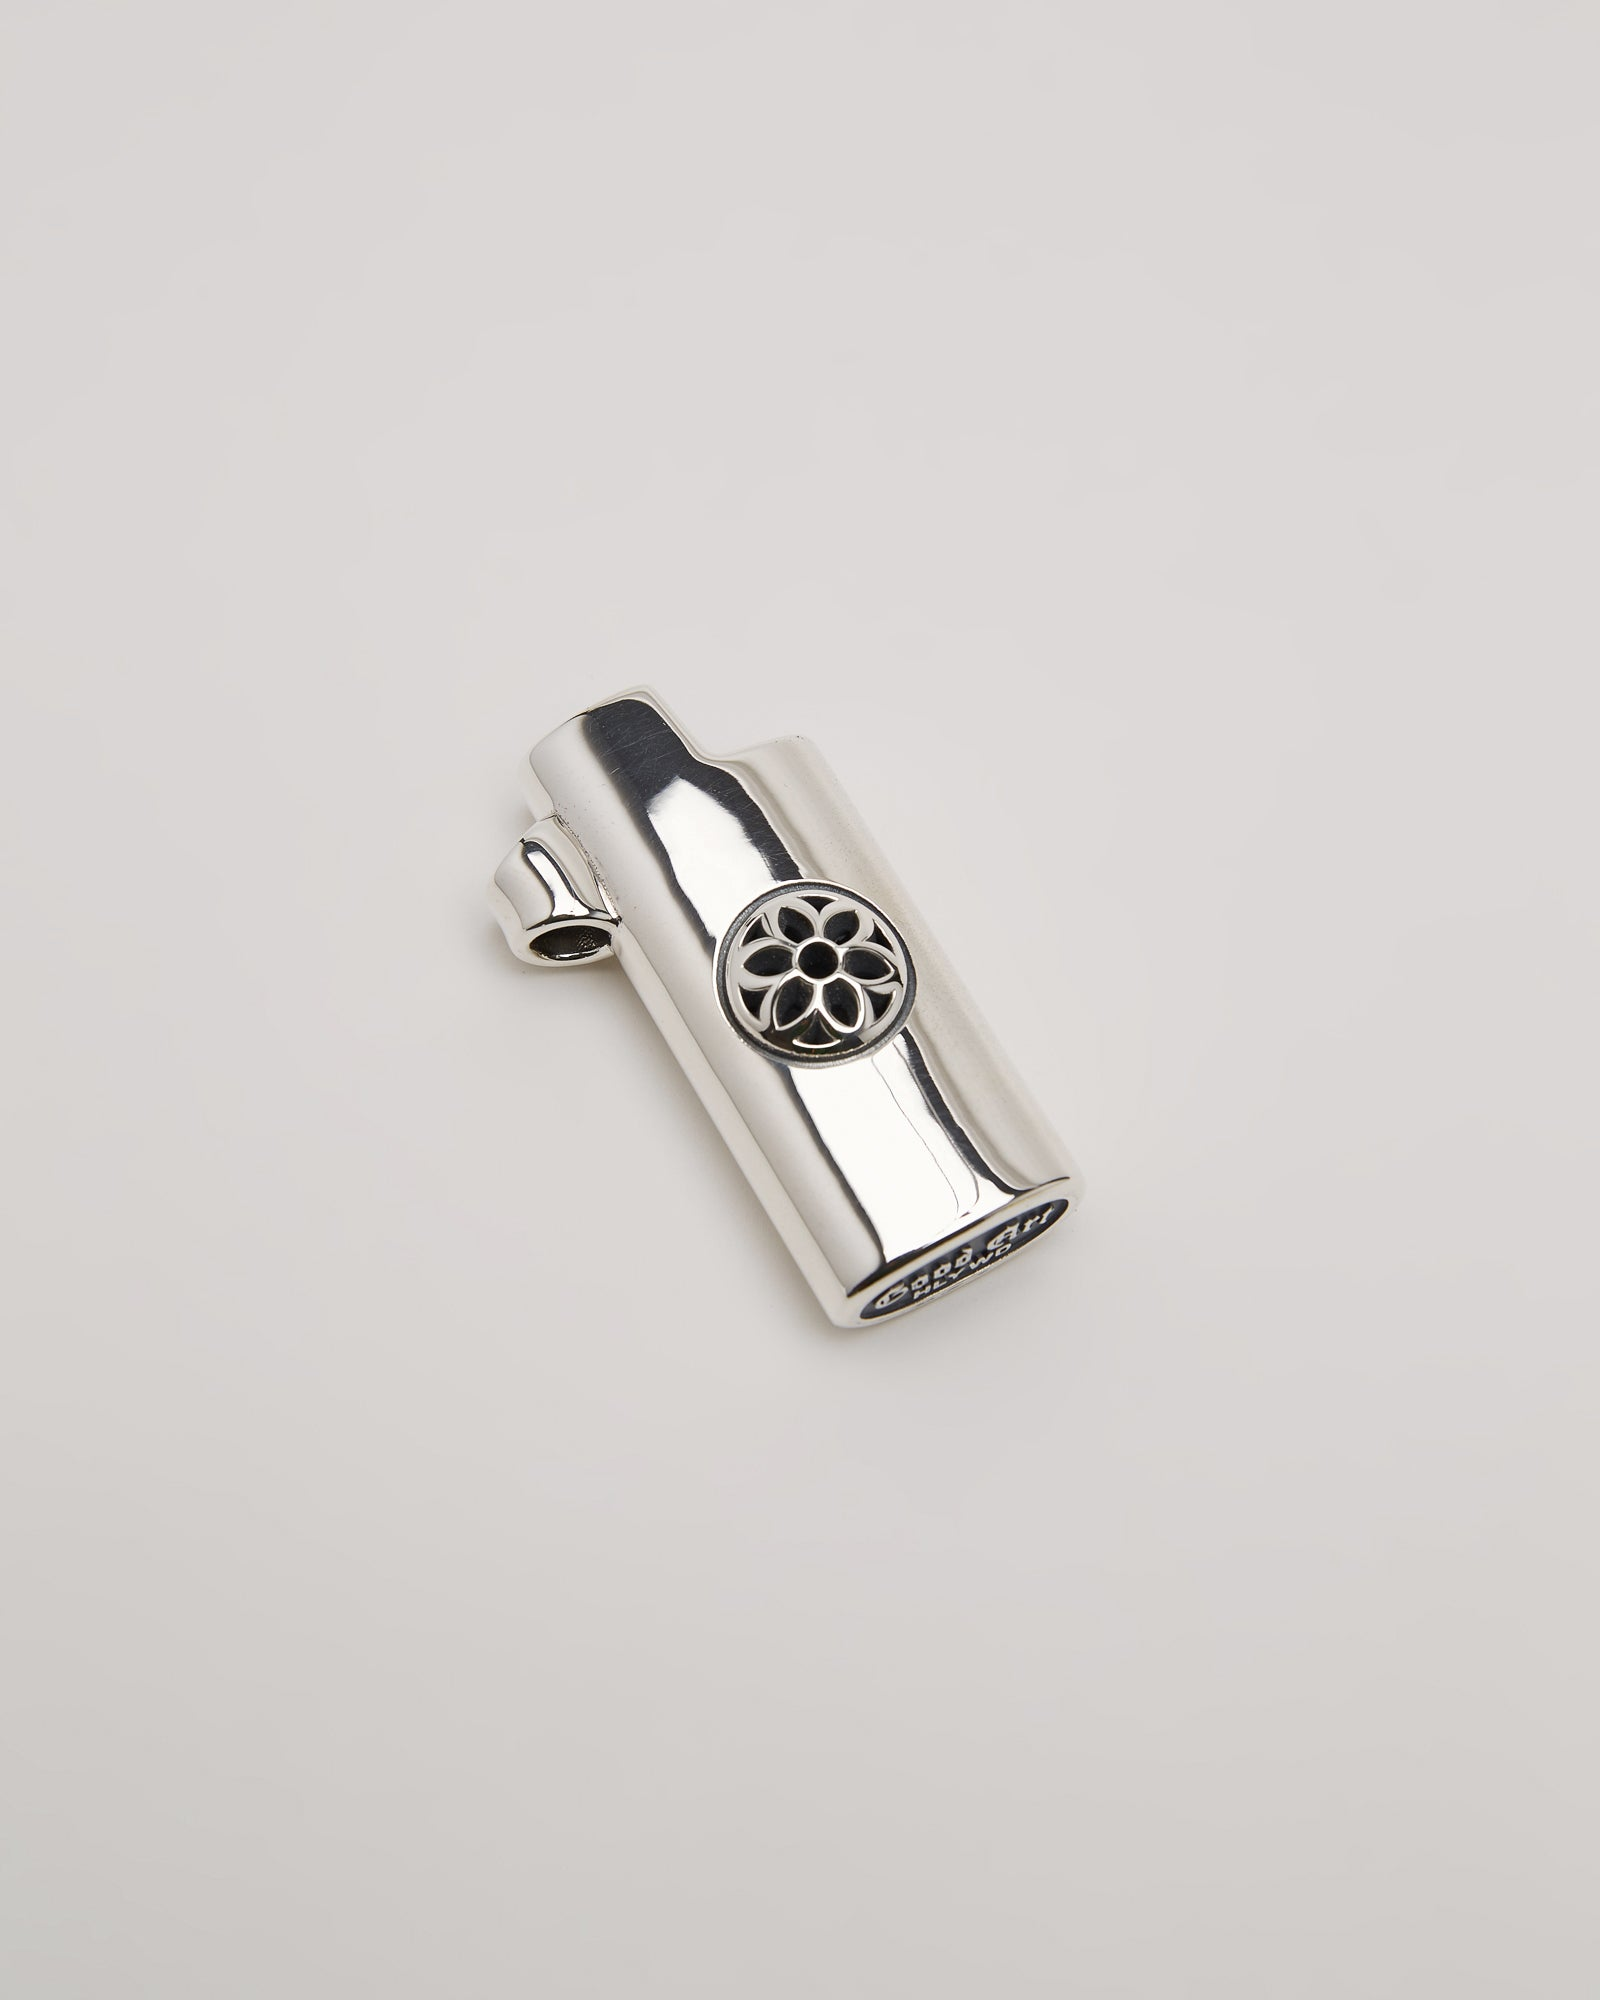 Mini Bic Noodle with Rosette, Sterling